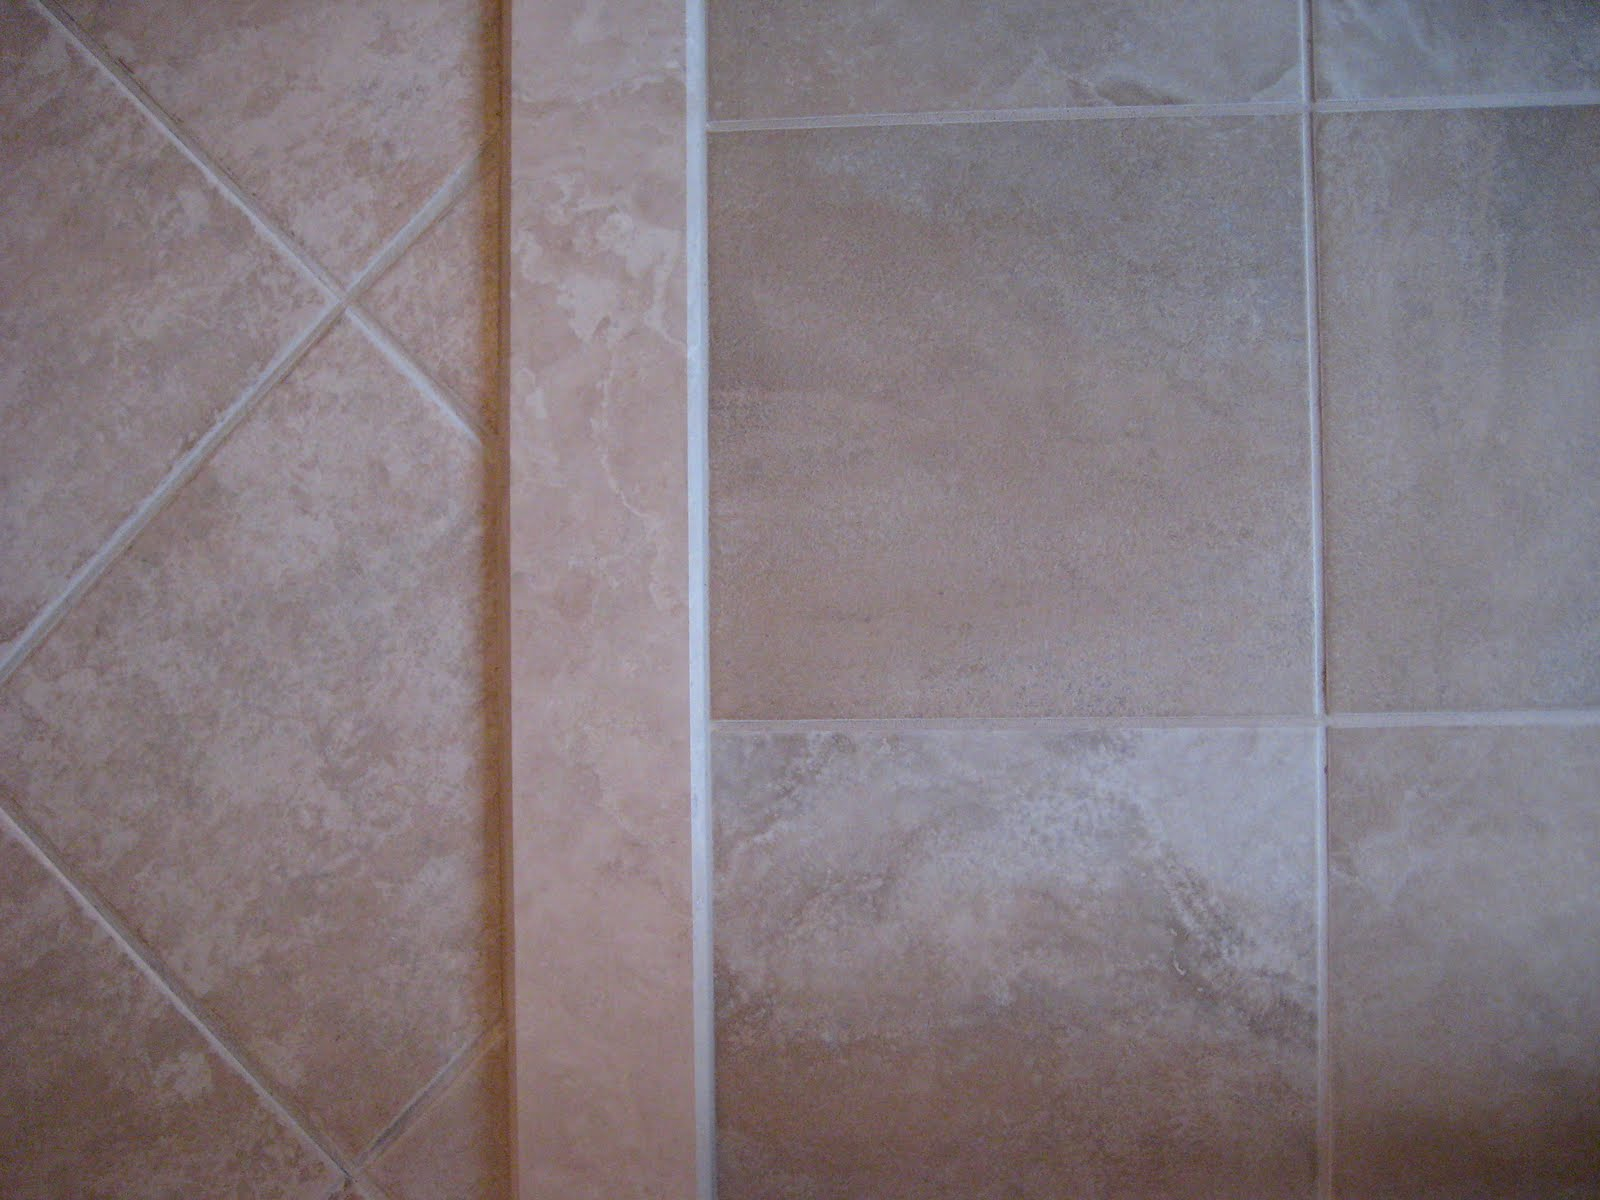 New Tile Saddle in place - tips on what to consider when tiling a room